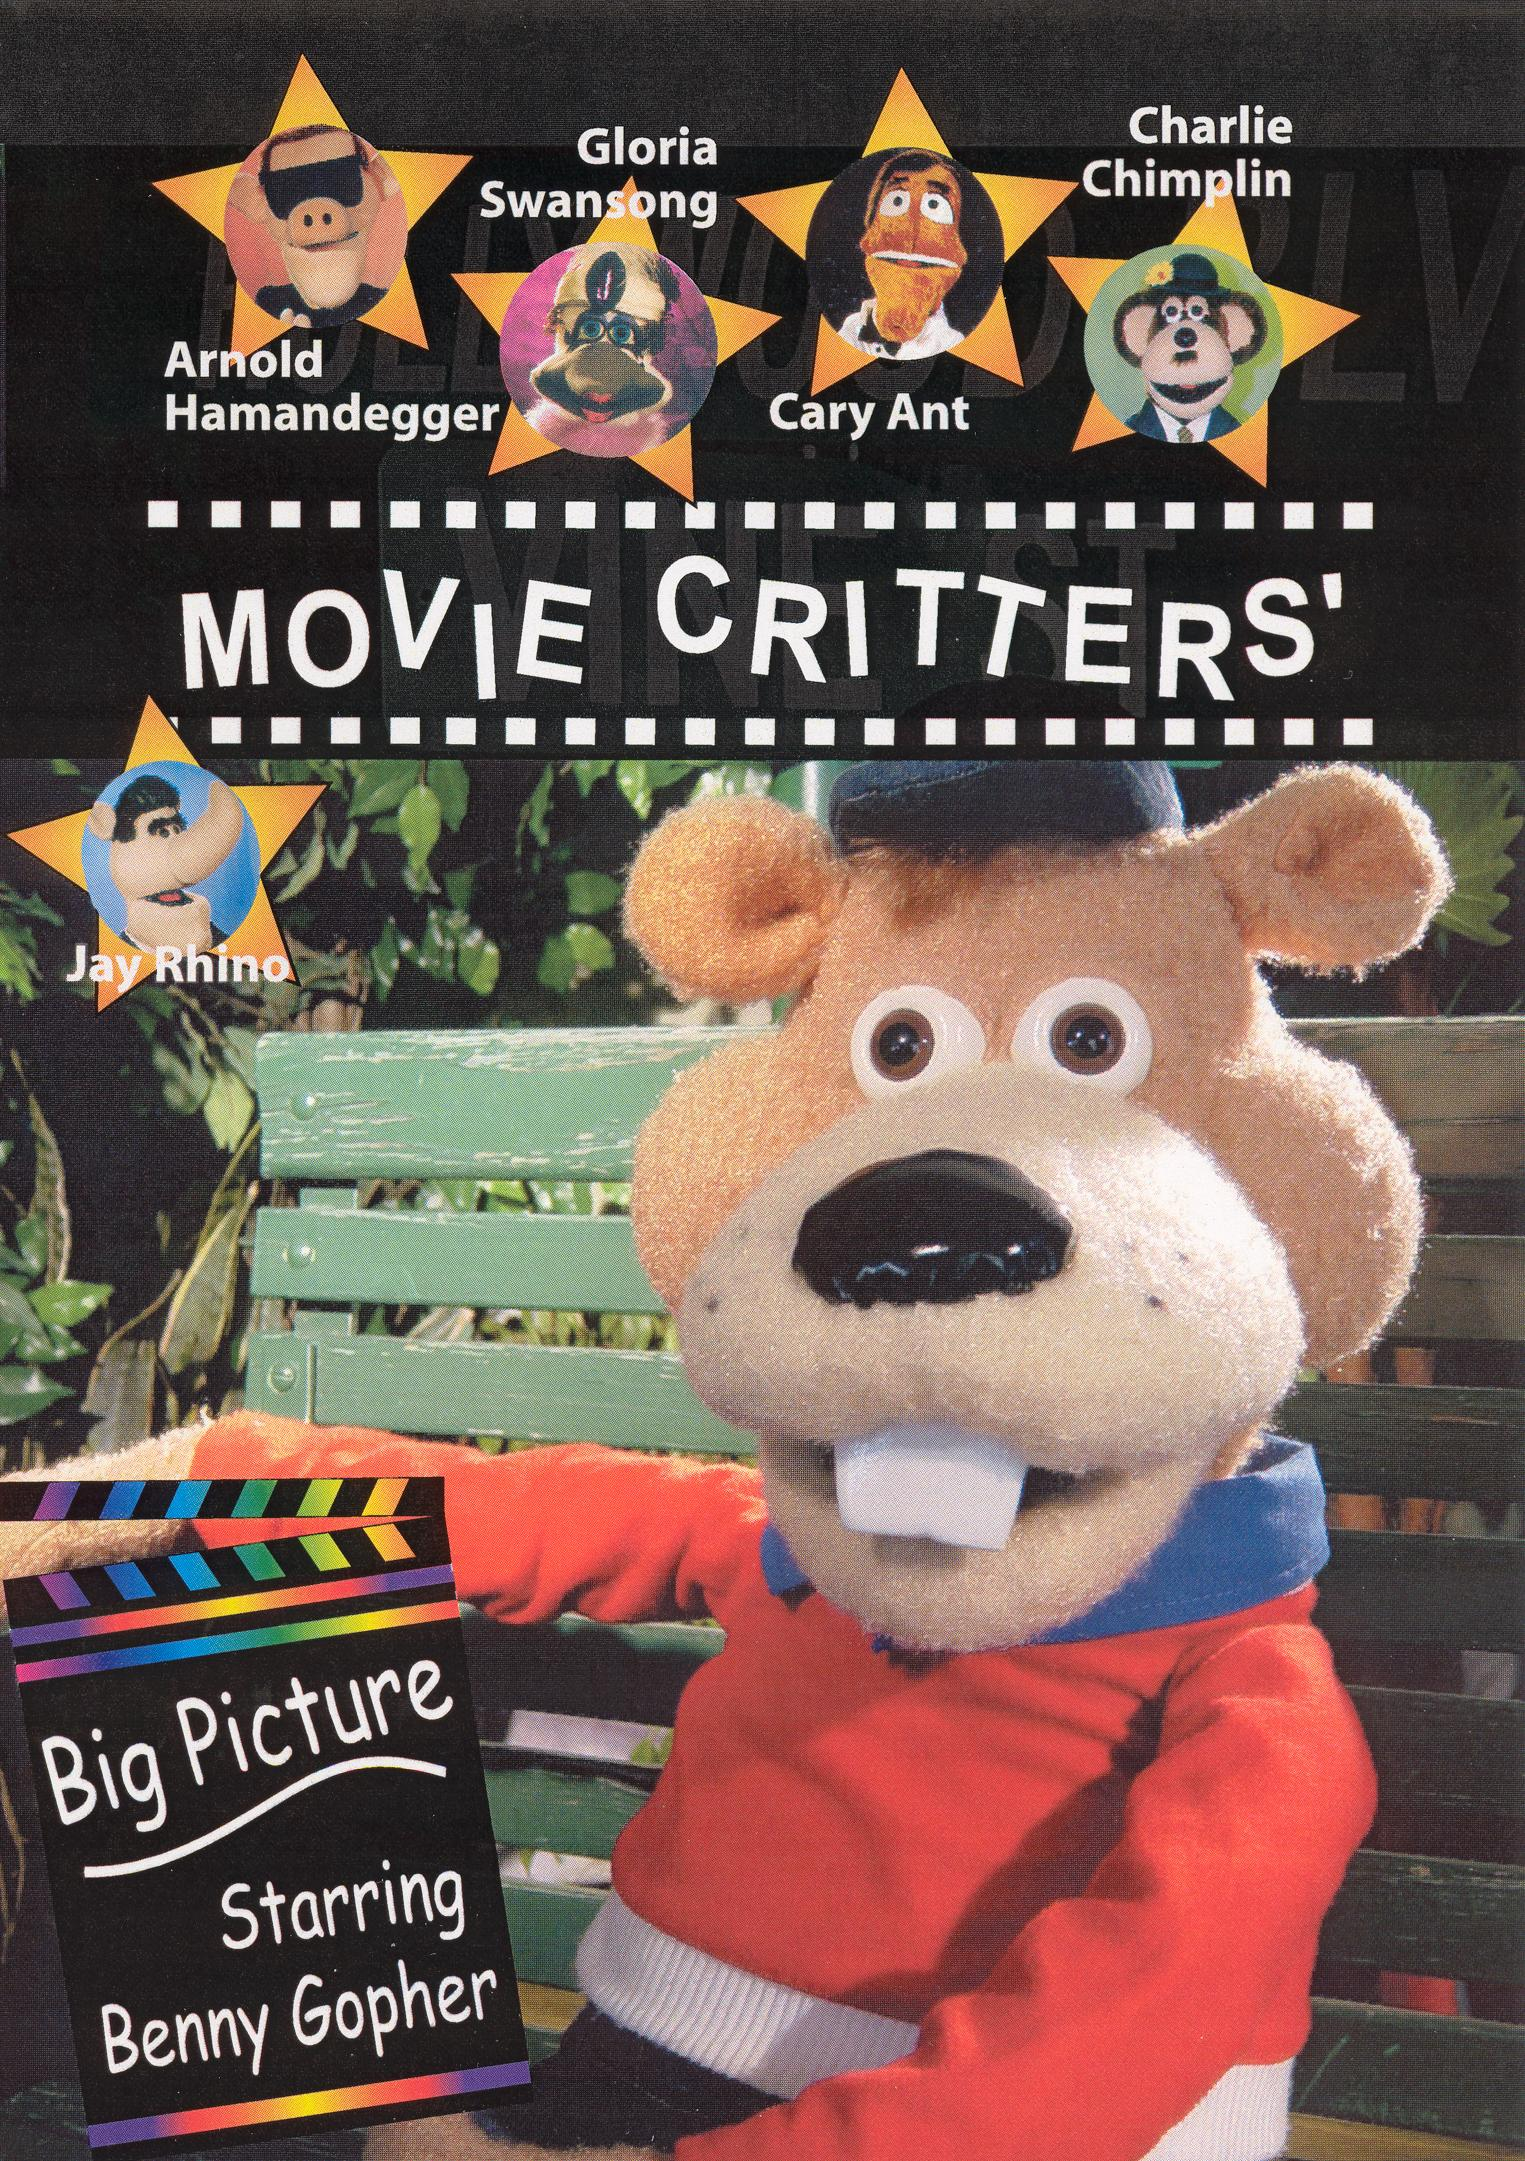 Movie Critters' Big Picture